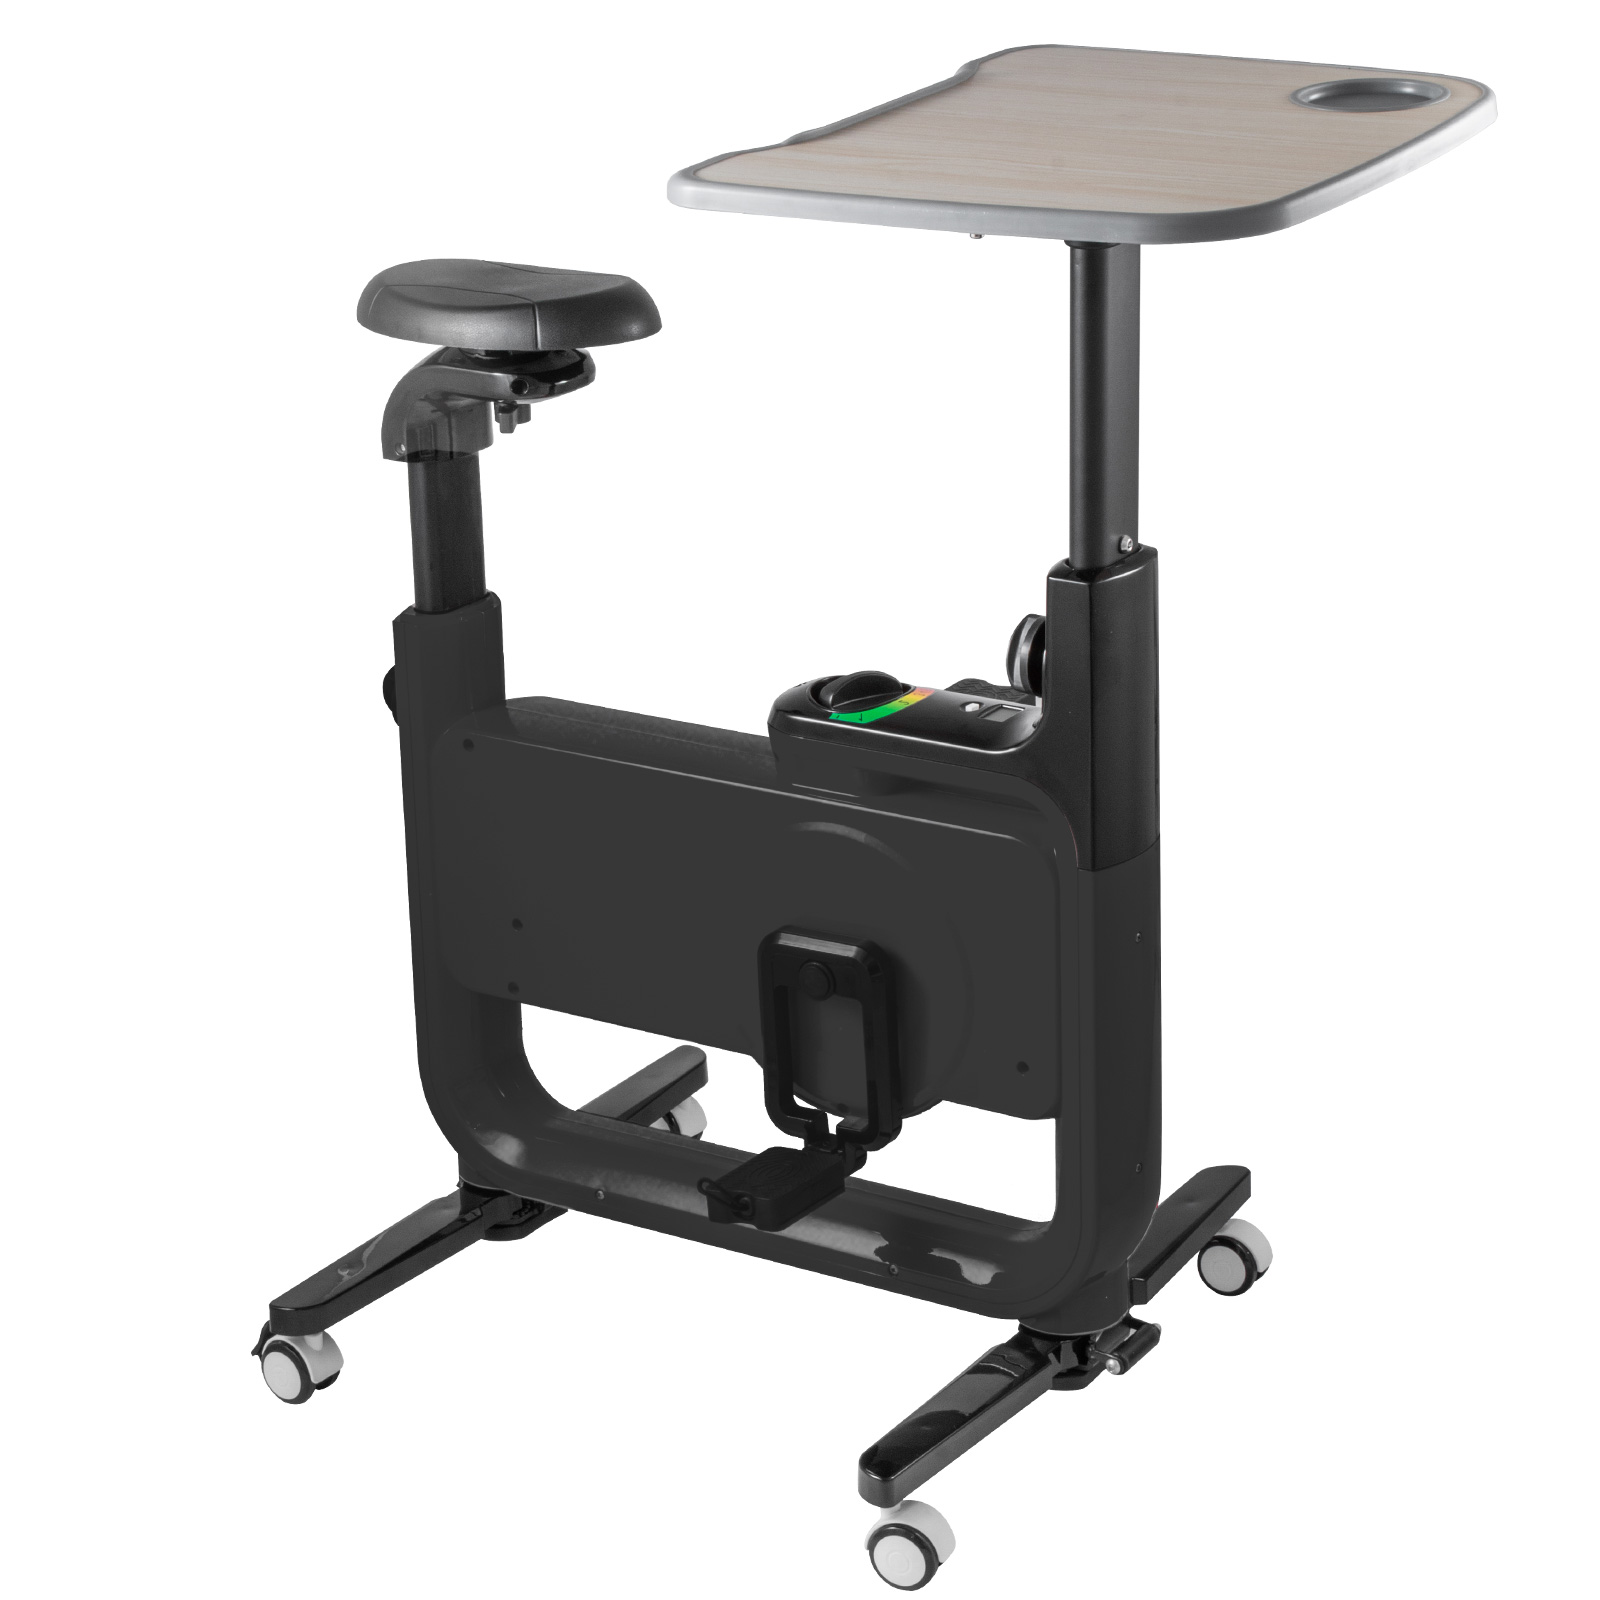 Multi-style-Magnetic-Exercise-Bike-office-Bicycle-under-Desk-Fitness-Cardio miniature 23